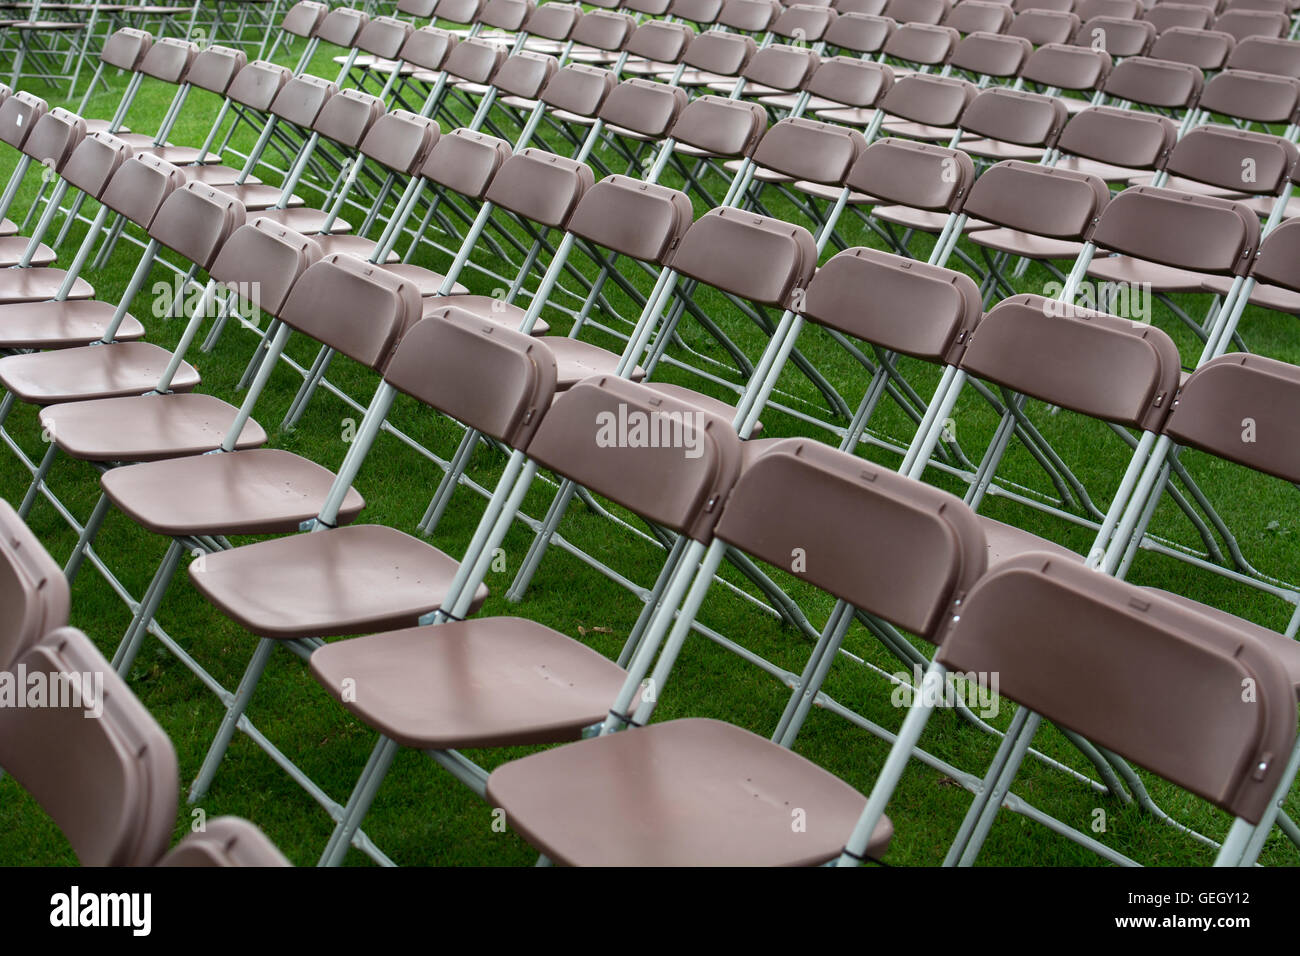 Rows of temporary seating at the Warwick Folk Festival, UK Stock